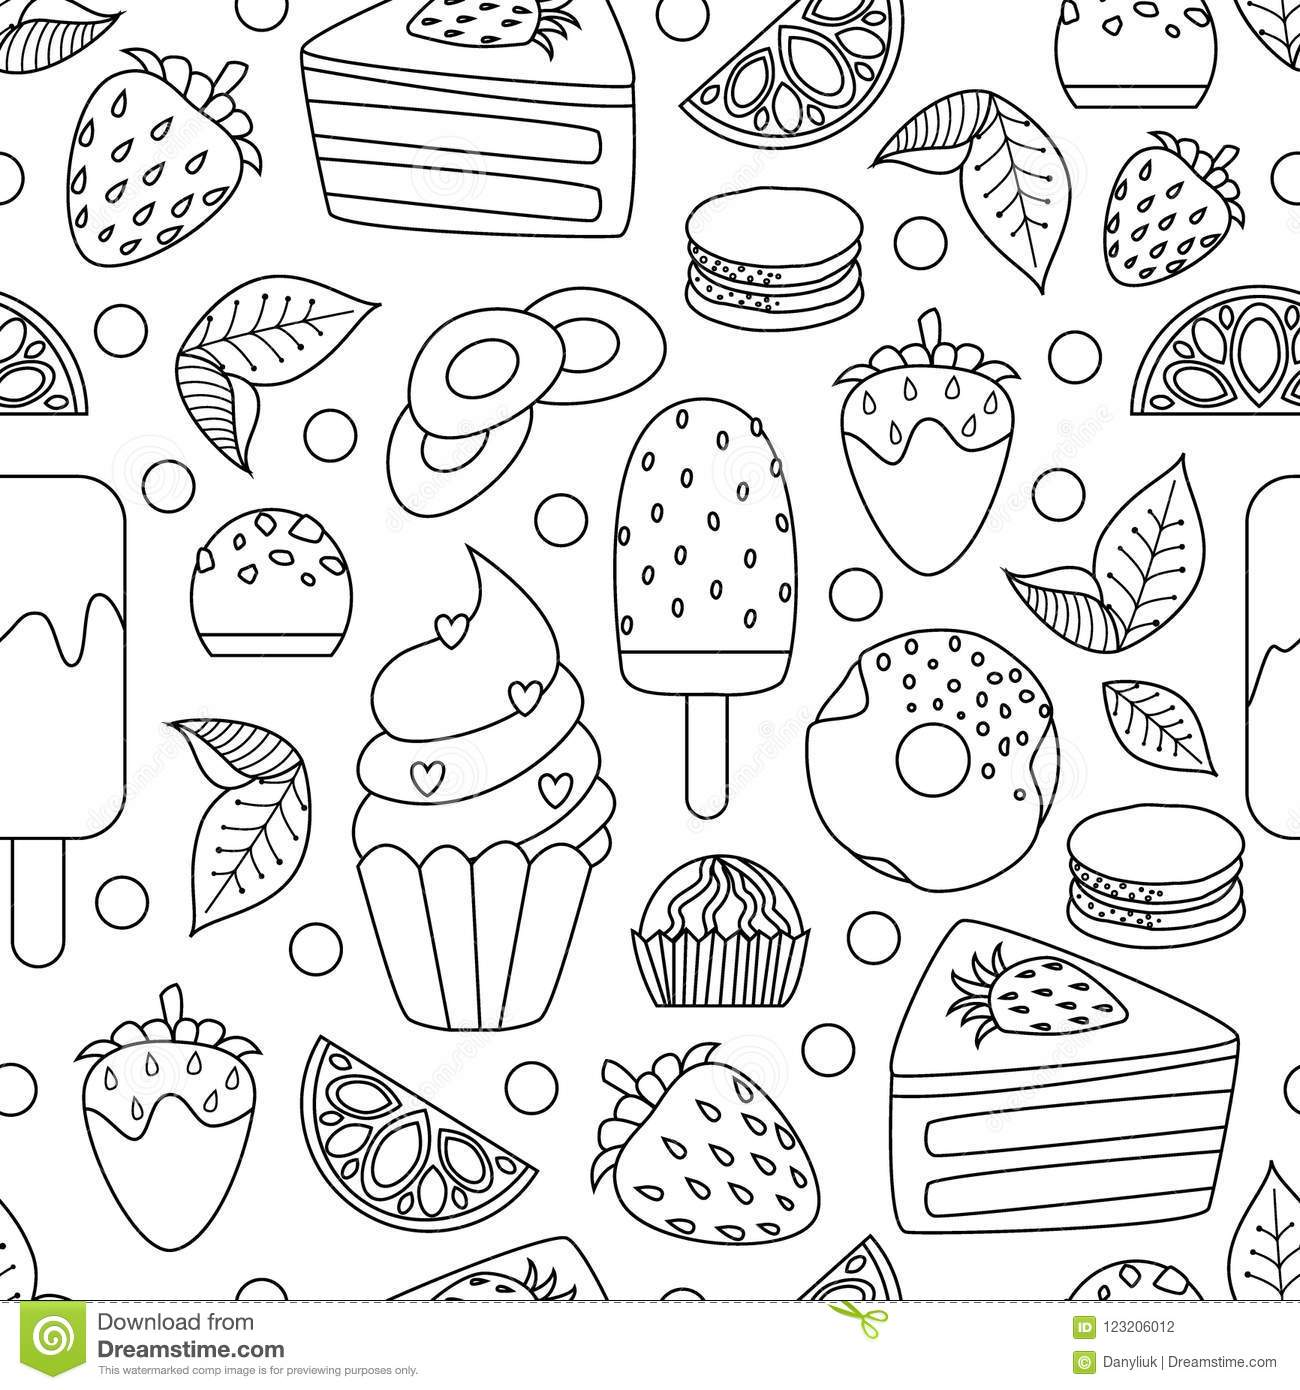 Coloring Book Hand Drawn Outline Artwork Page Vector